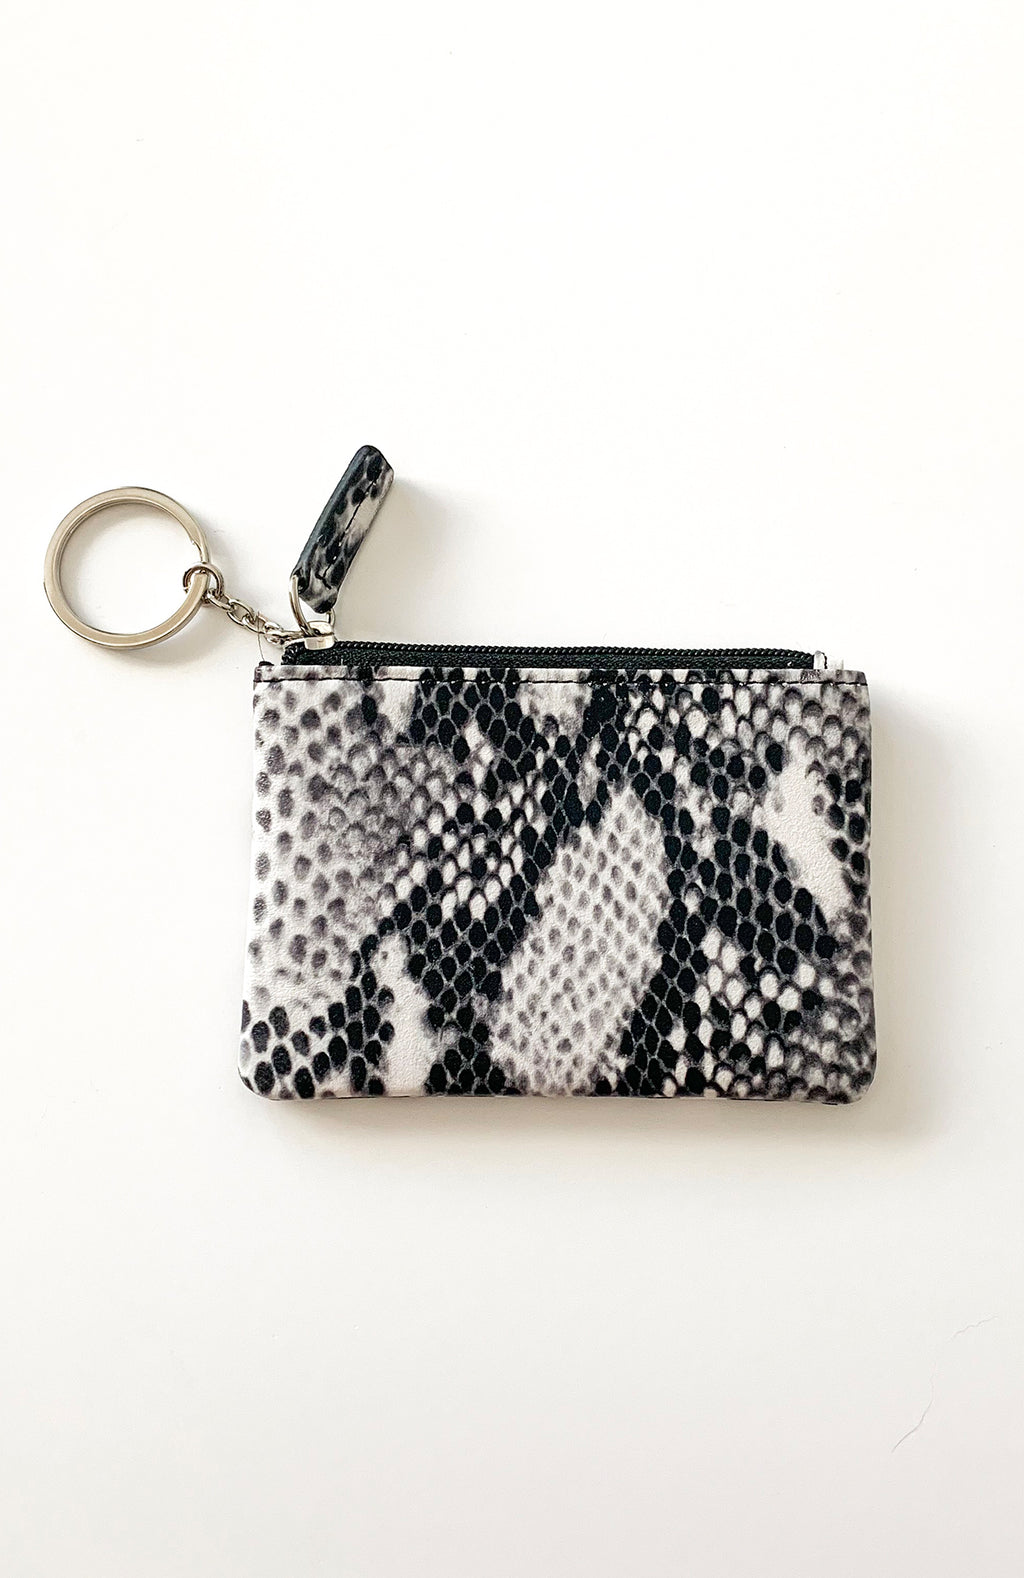 Black + White Snakeskin Coin Purse